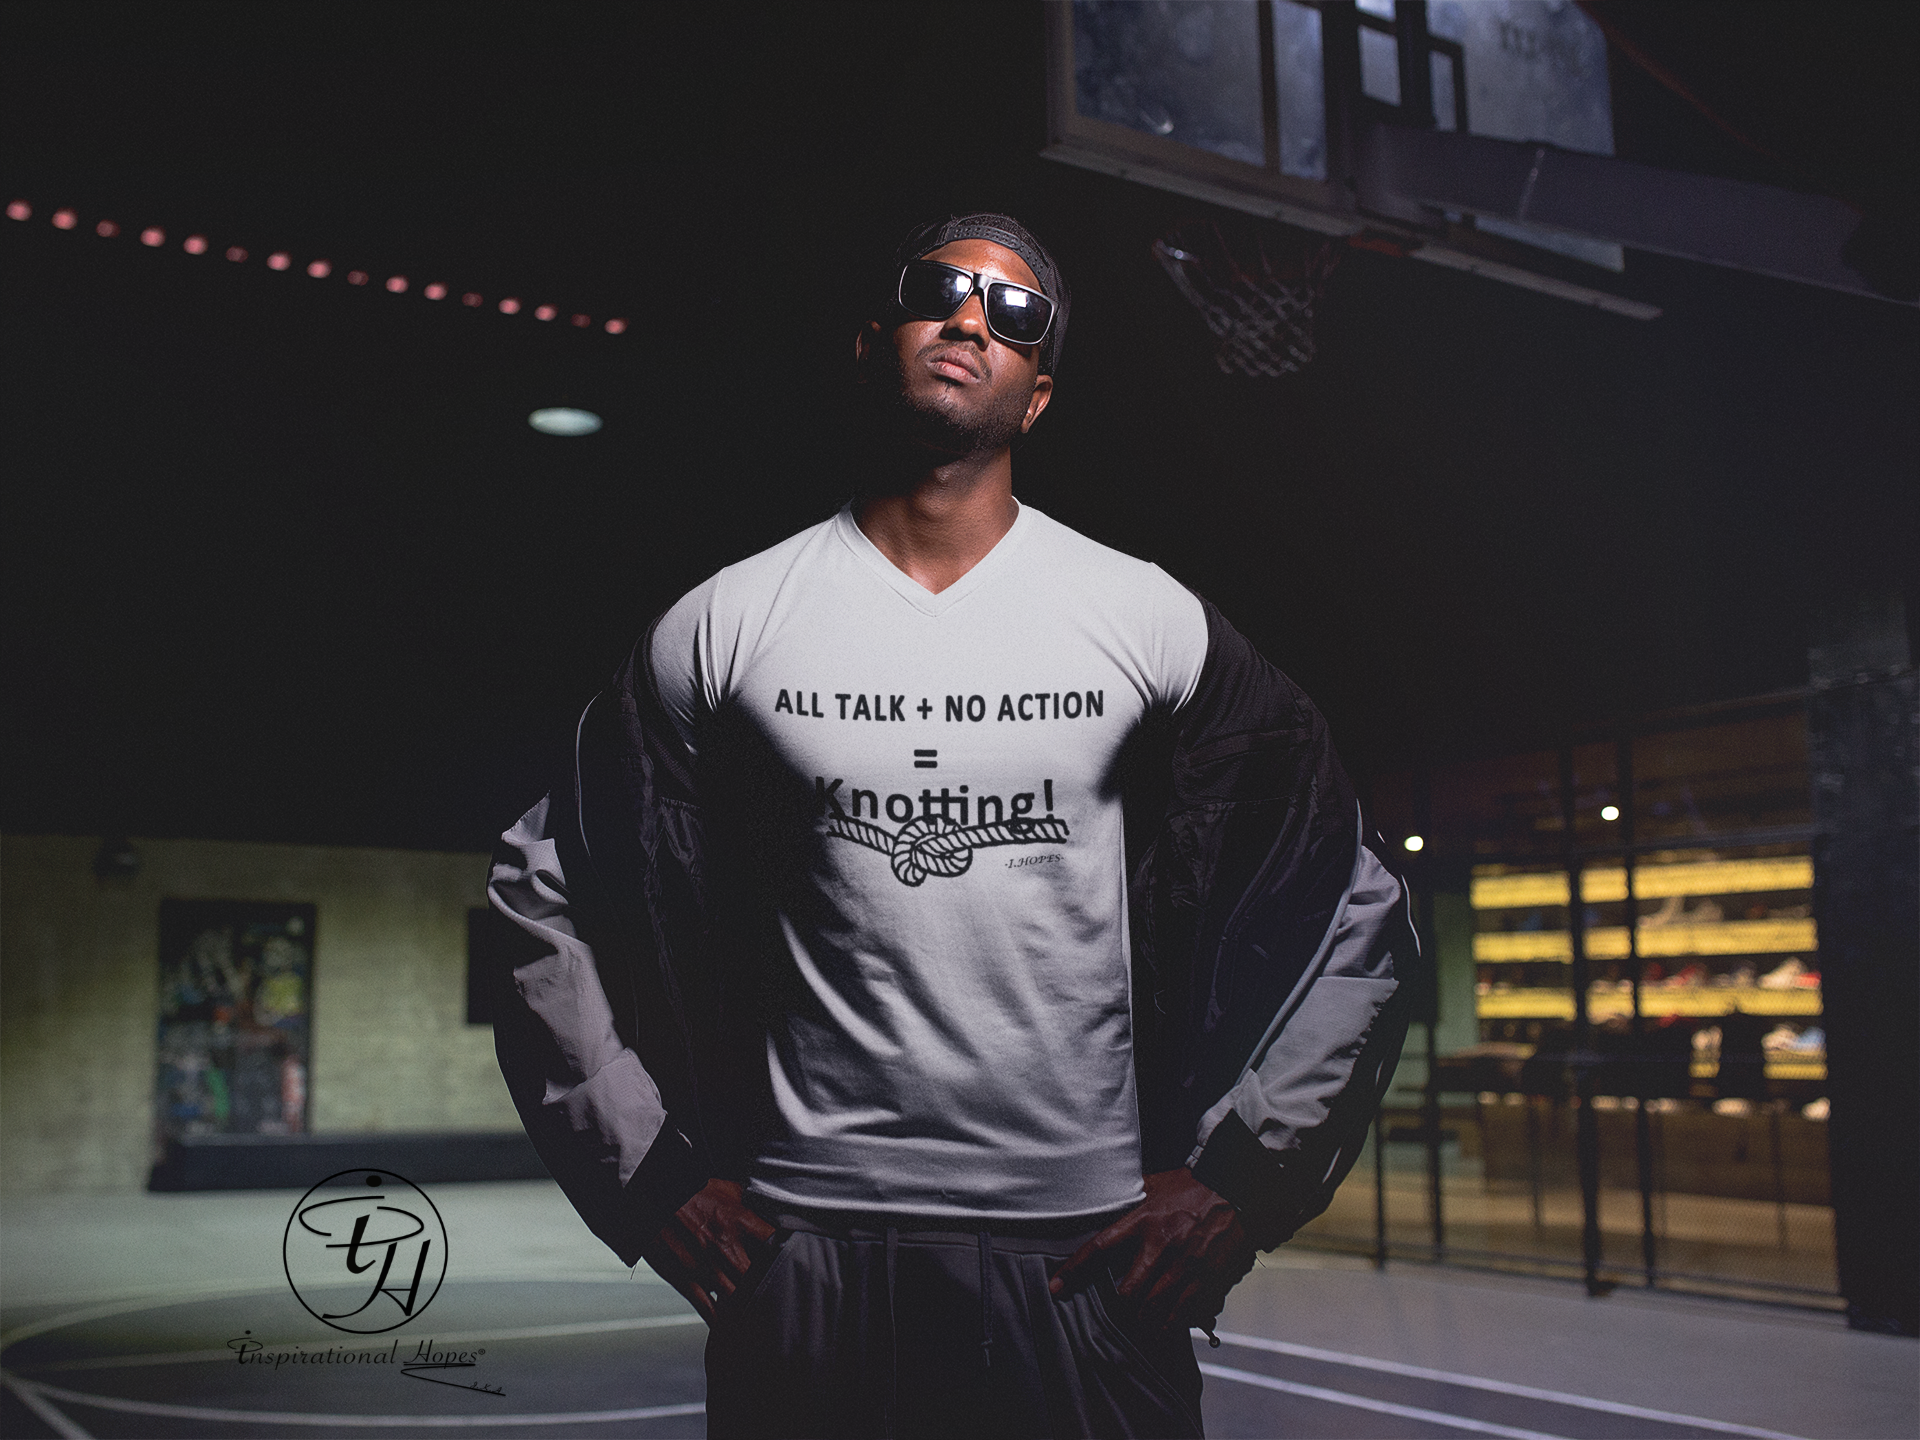 v-neck-tee-mockup-of-an-urban-guy-at-a-basketball-court-a12156